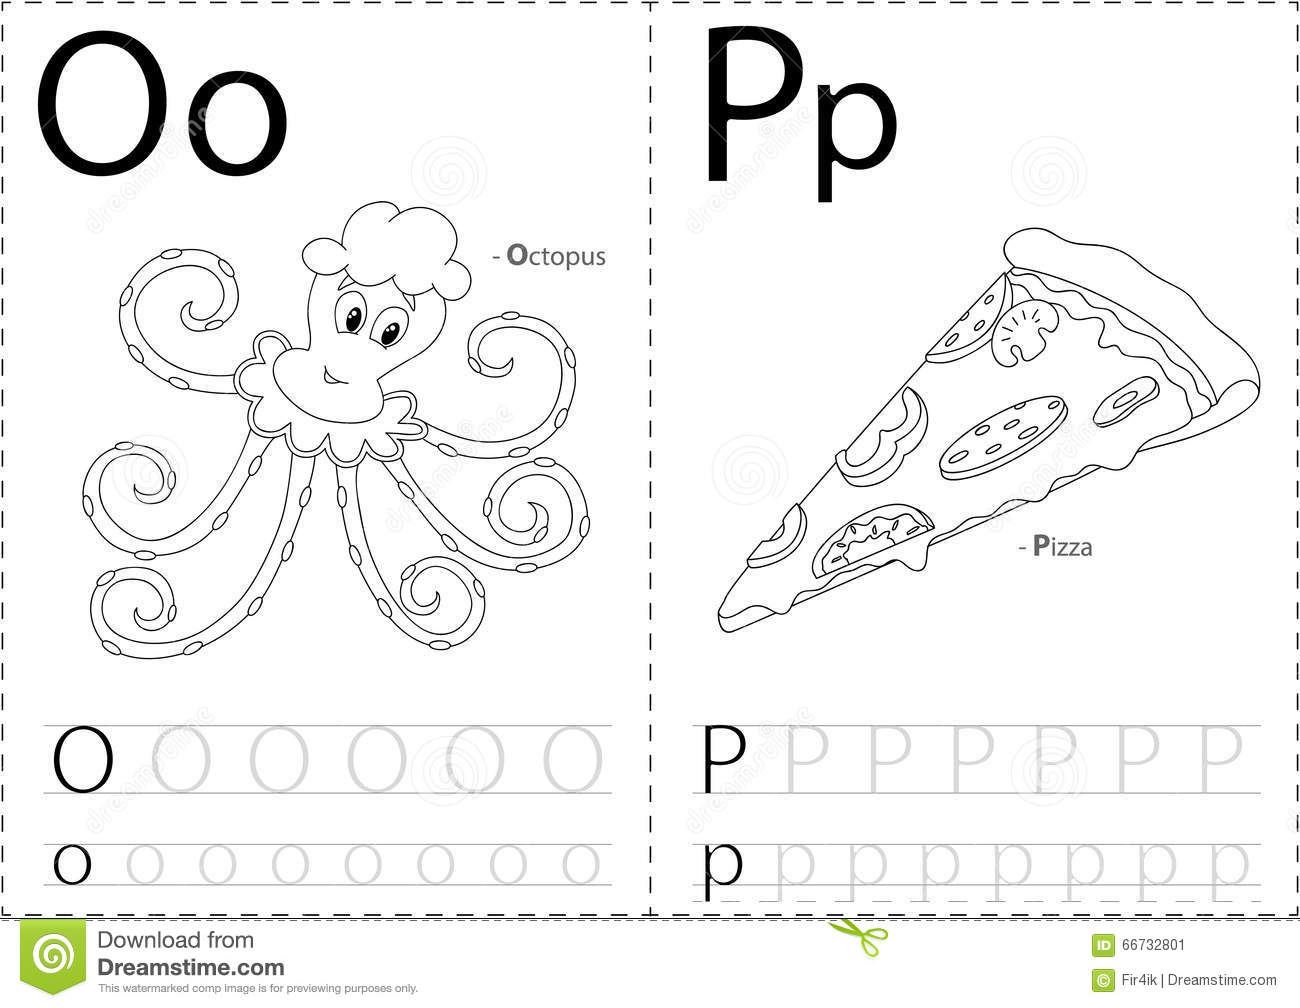 Cartoon Octopus And Pizza Alphabet Tracing Worksheet Writing A – Alphabet Trace Worksheet